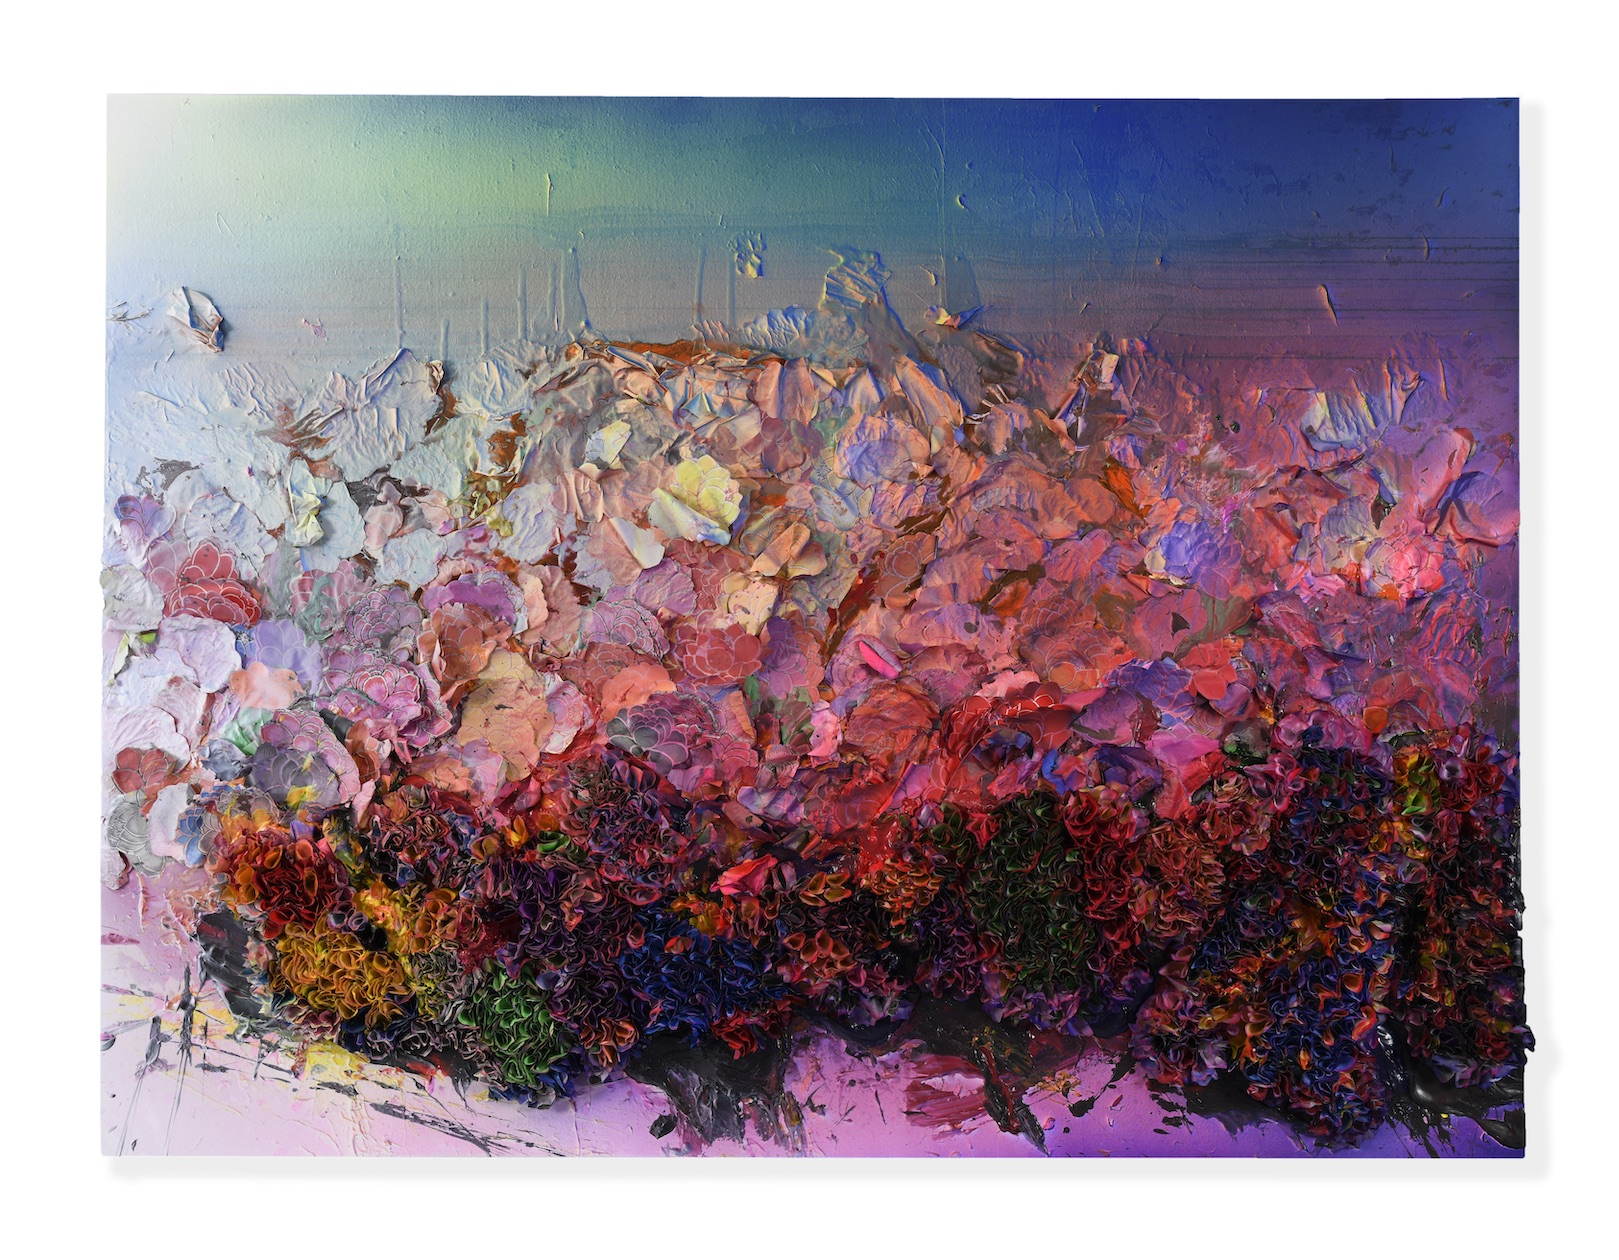 Zhuang Hong Yi's contemporary twist on art escapism, 'Essence' is set for a colourful spring début at HOFA Gallery